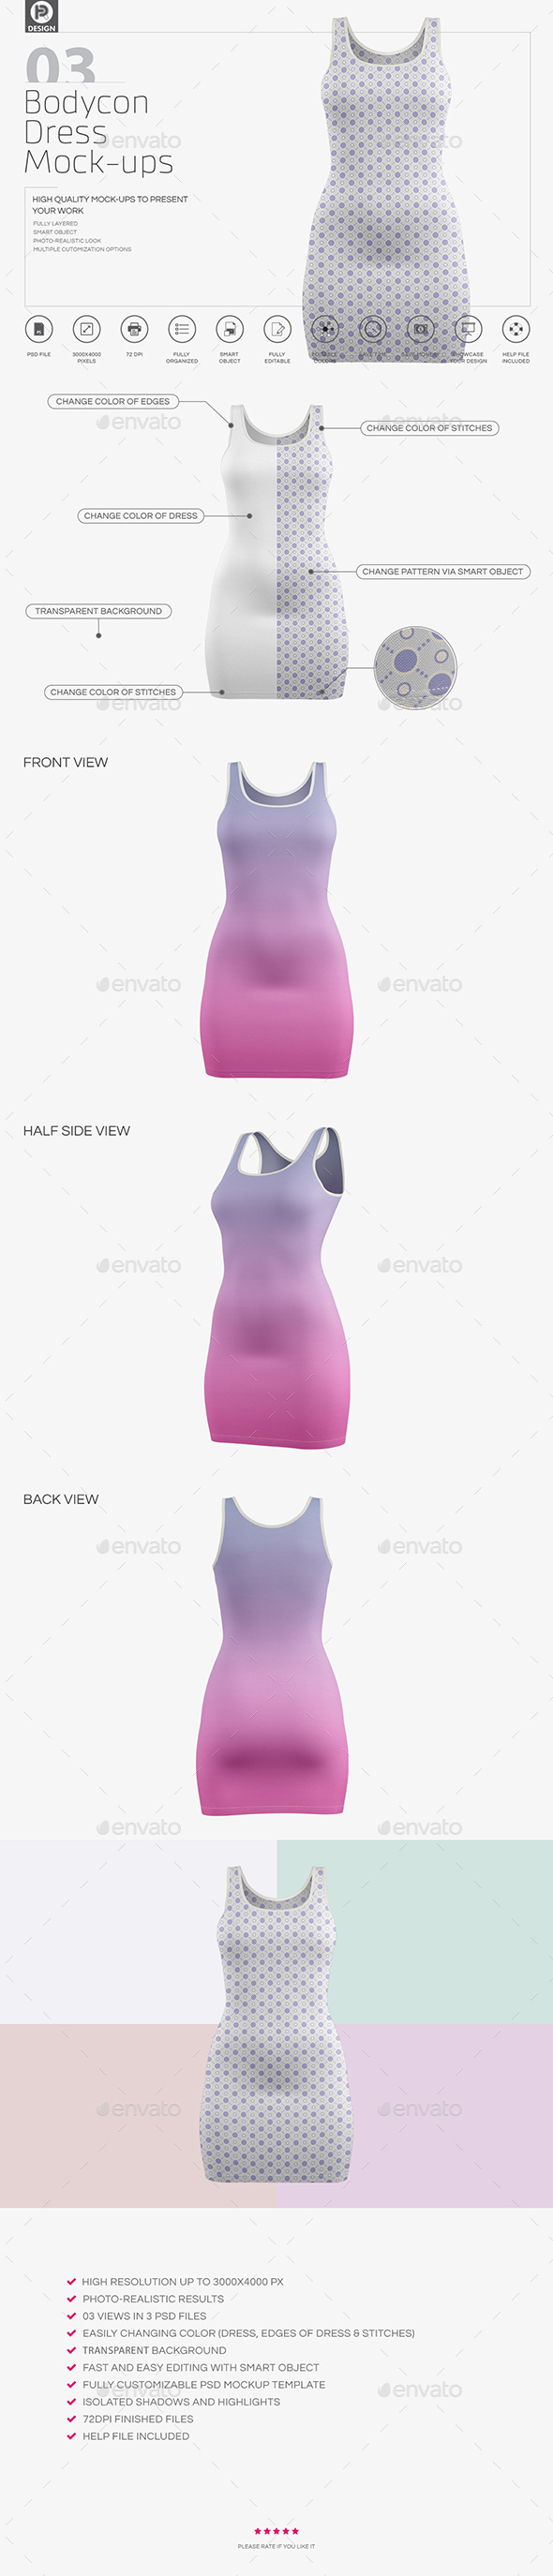 Bodycon Dress Mockups - Miscellaneous Apparel